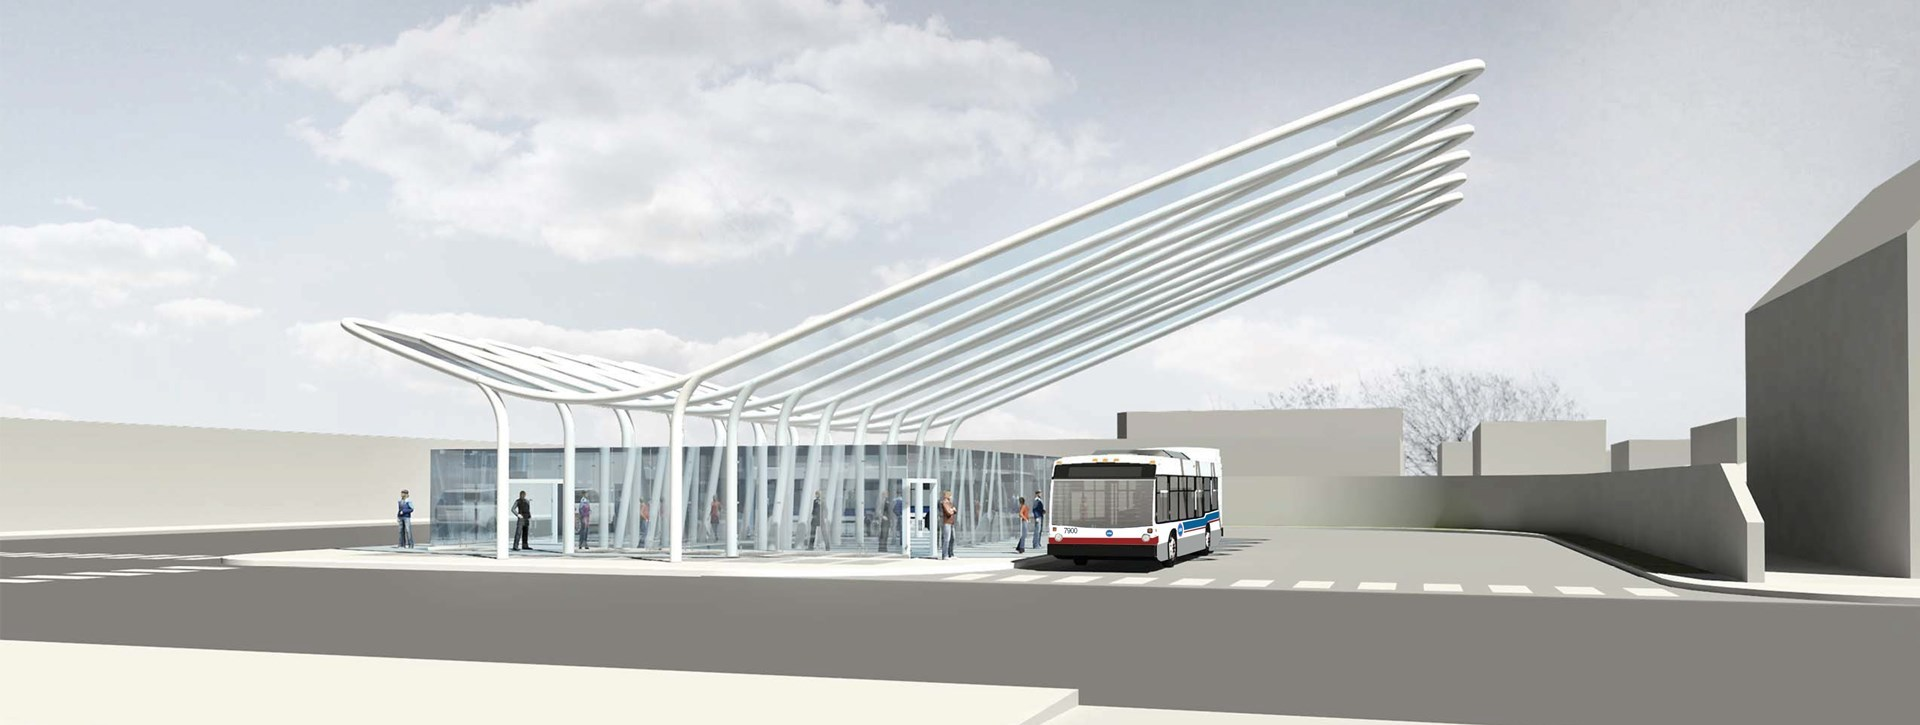 Conceptual rendering of new architectural canopy at Belmont Blue Line